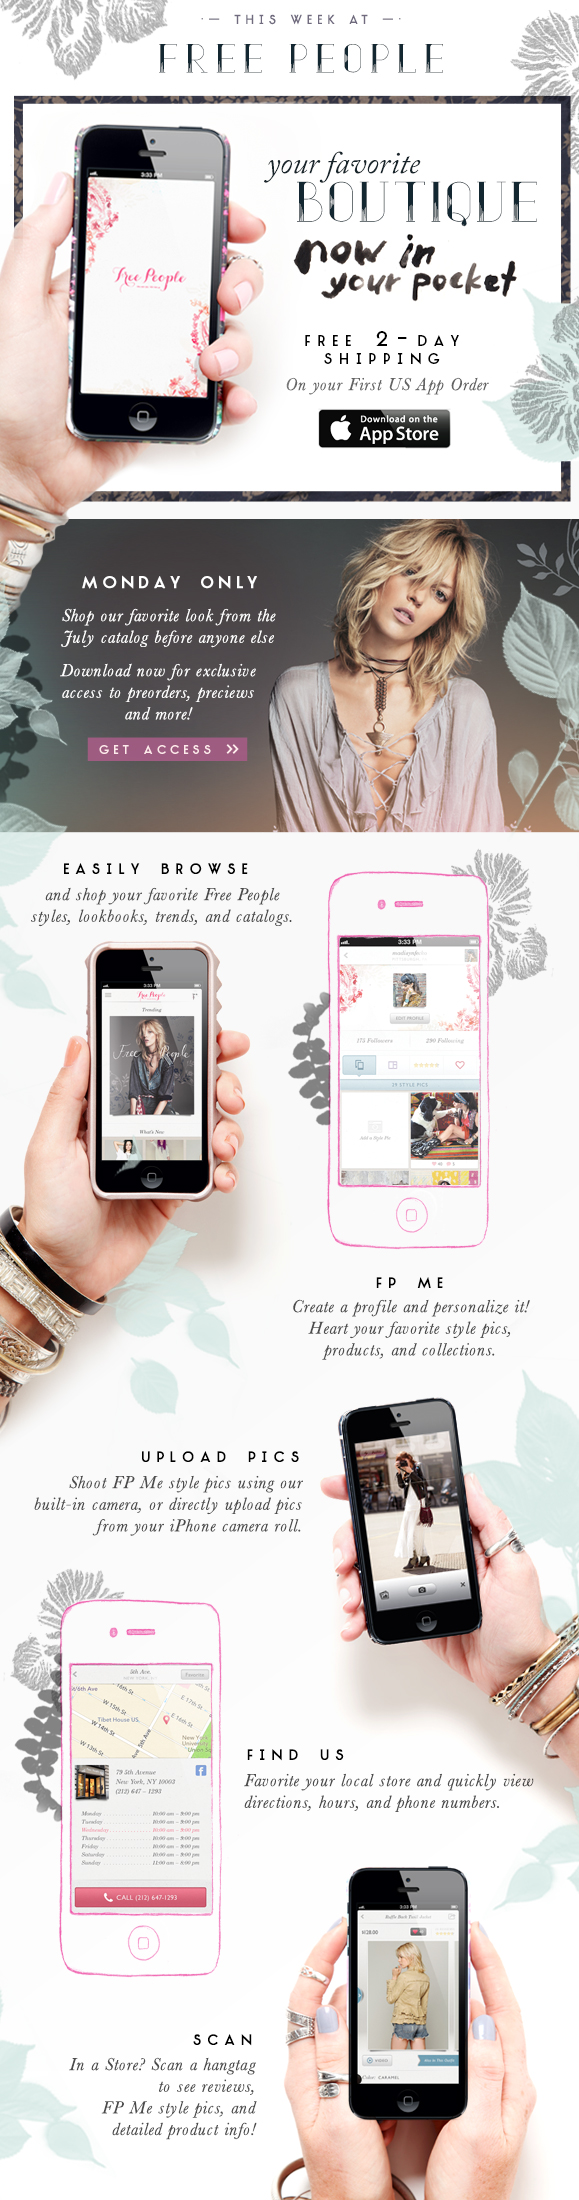 Free People AppLaunch_Email.jpg